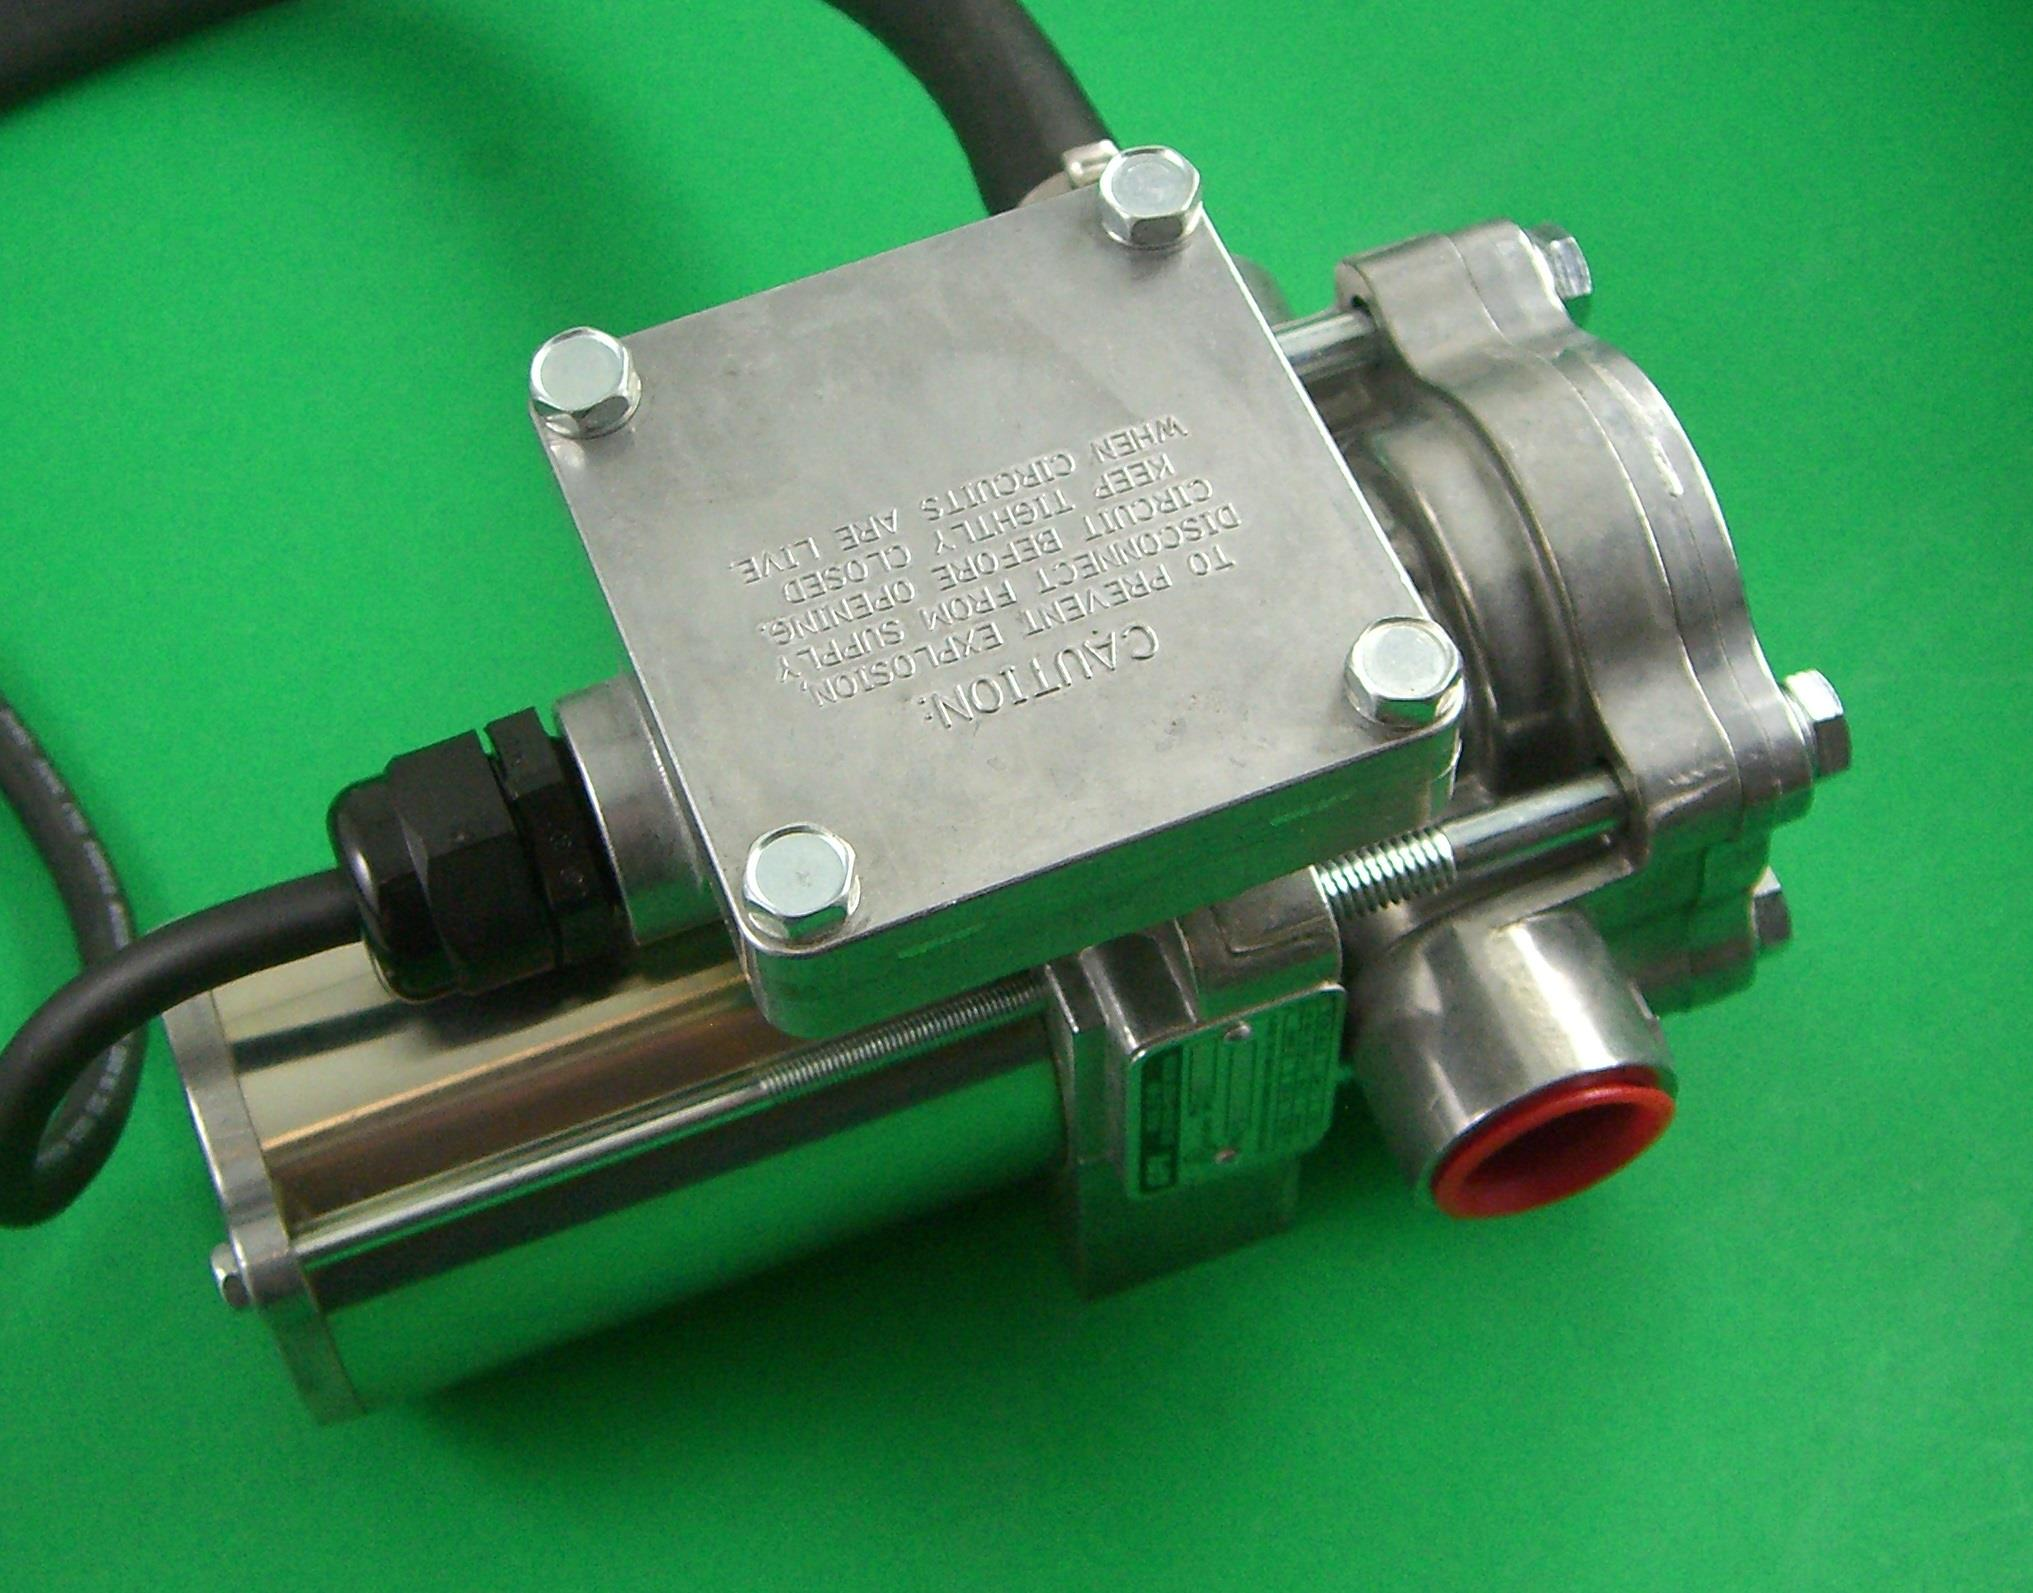 eci 6173 fuel pump gpi ez 8rv explosion proof motor ebay